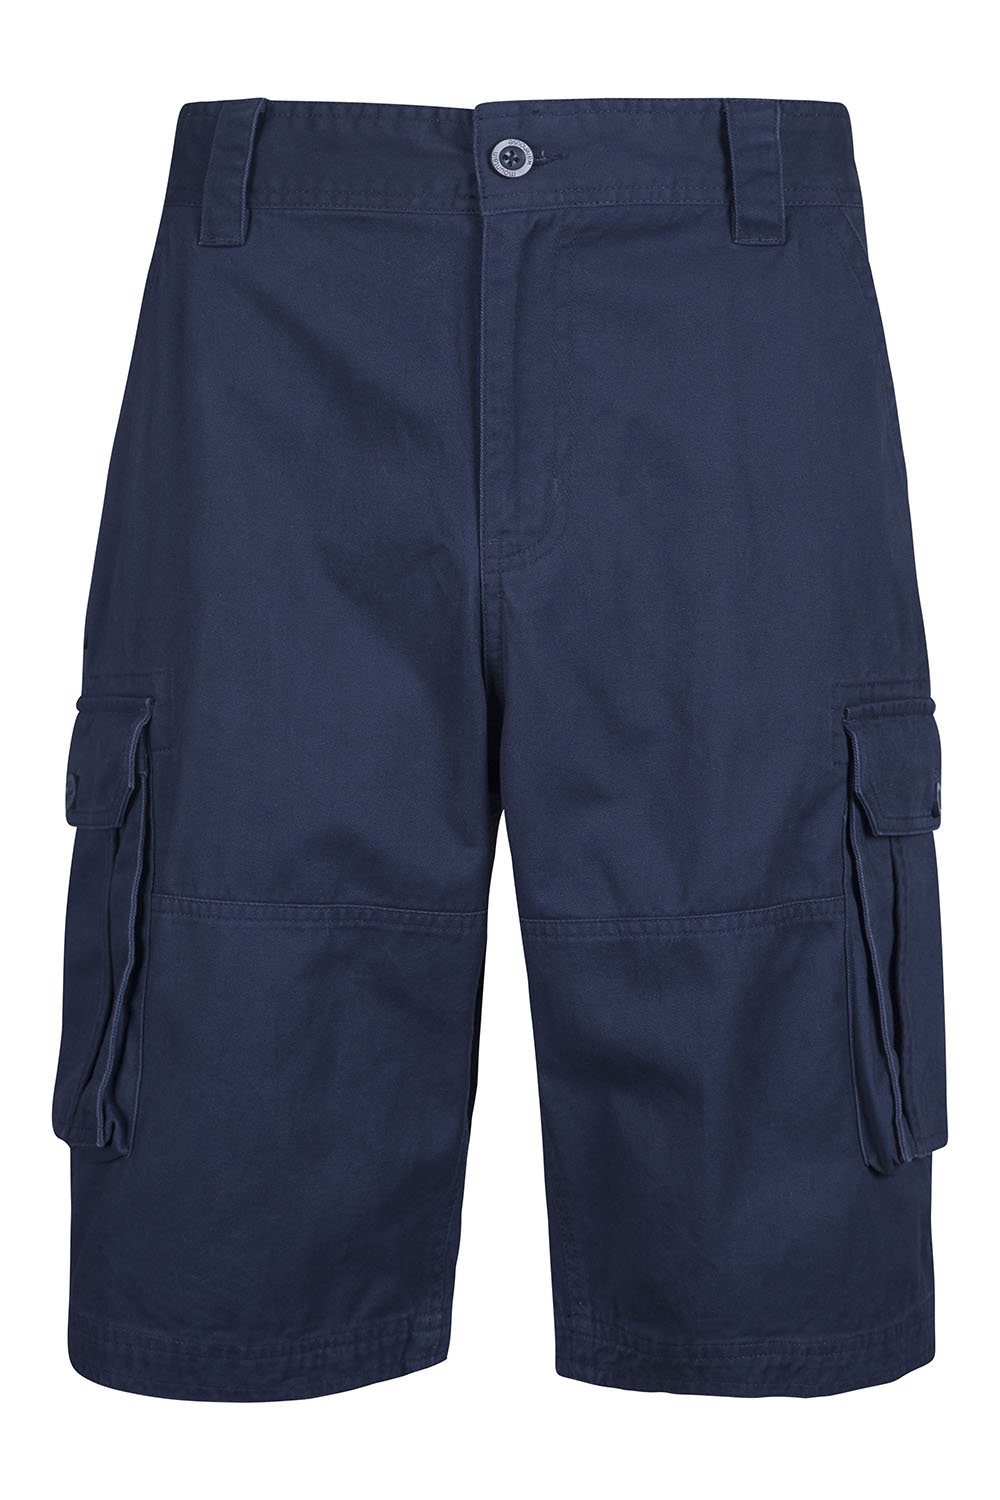 Mountain Warehouse Cargo Mens Shorts -Twill Cotton Summer Hiking Pants